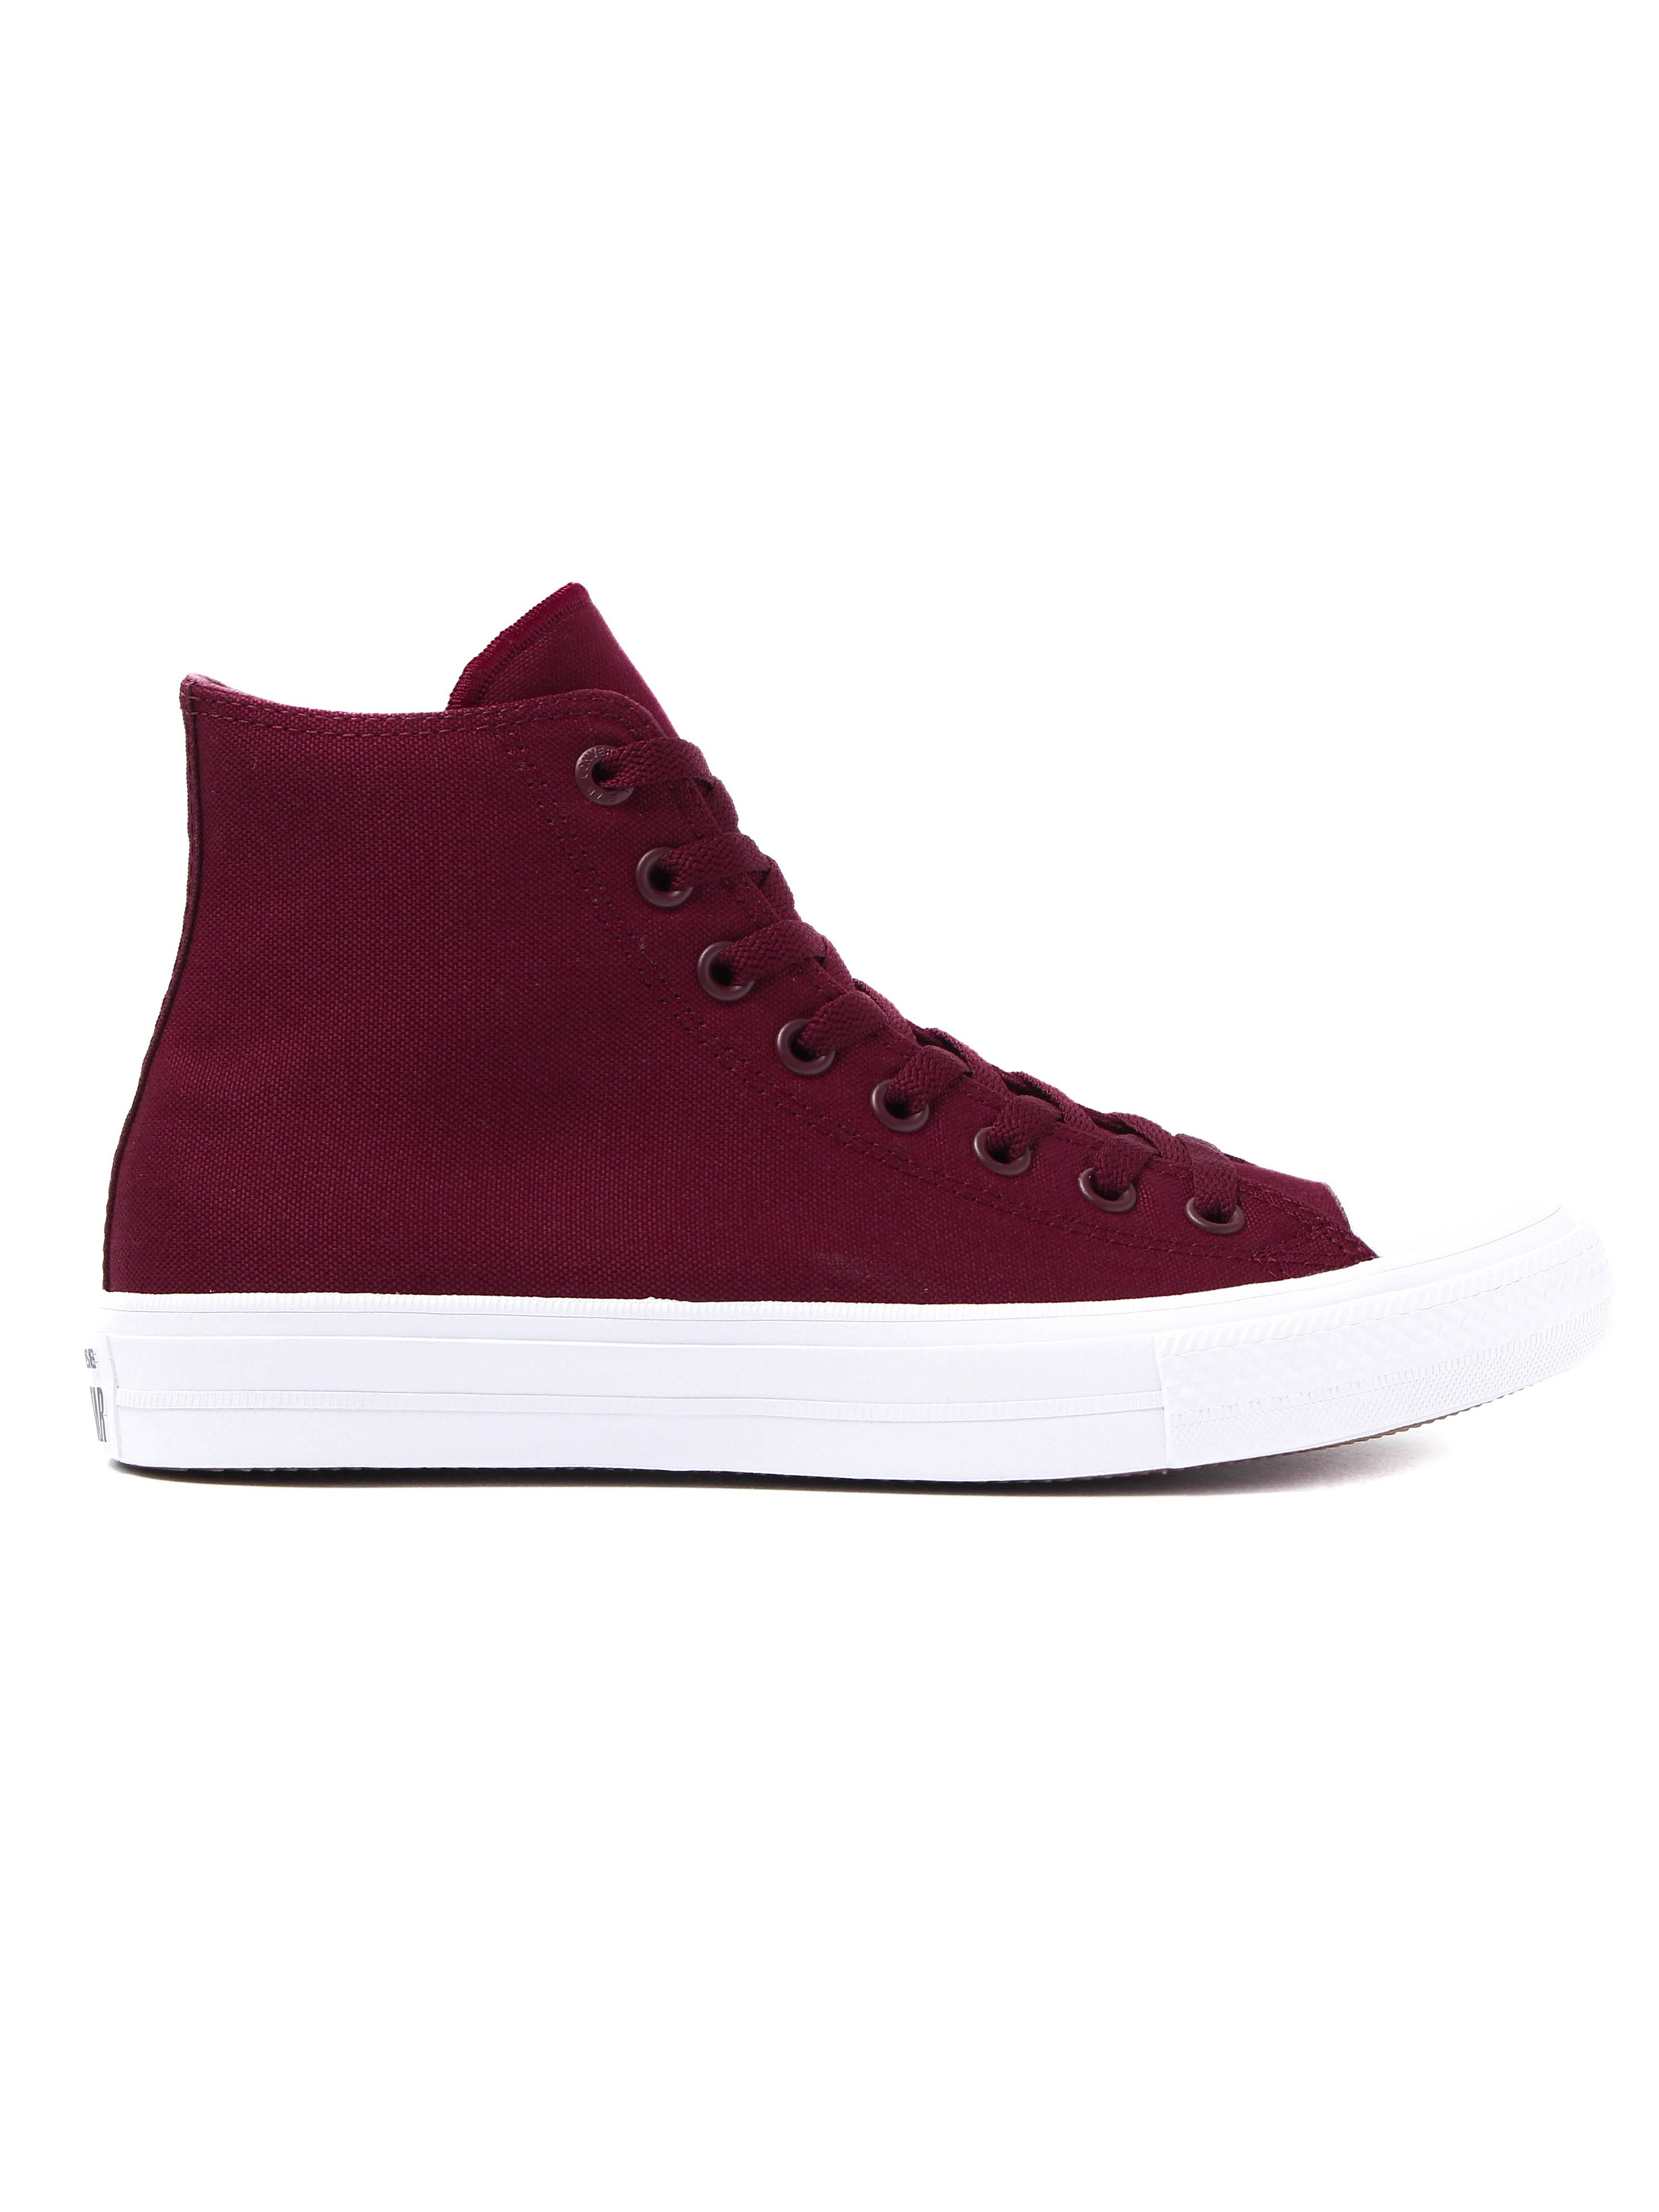 Converse Men's Chuck Taylor All Star II HI Trainers - Bordeaux